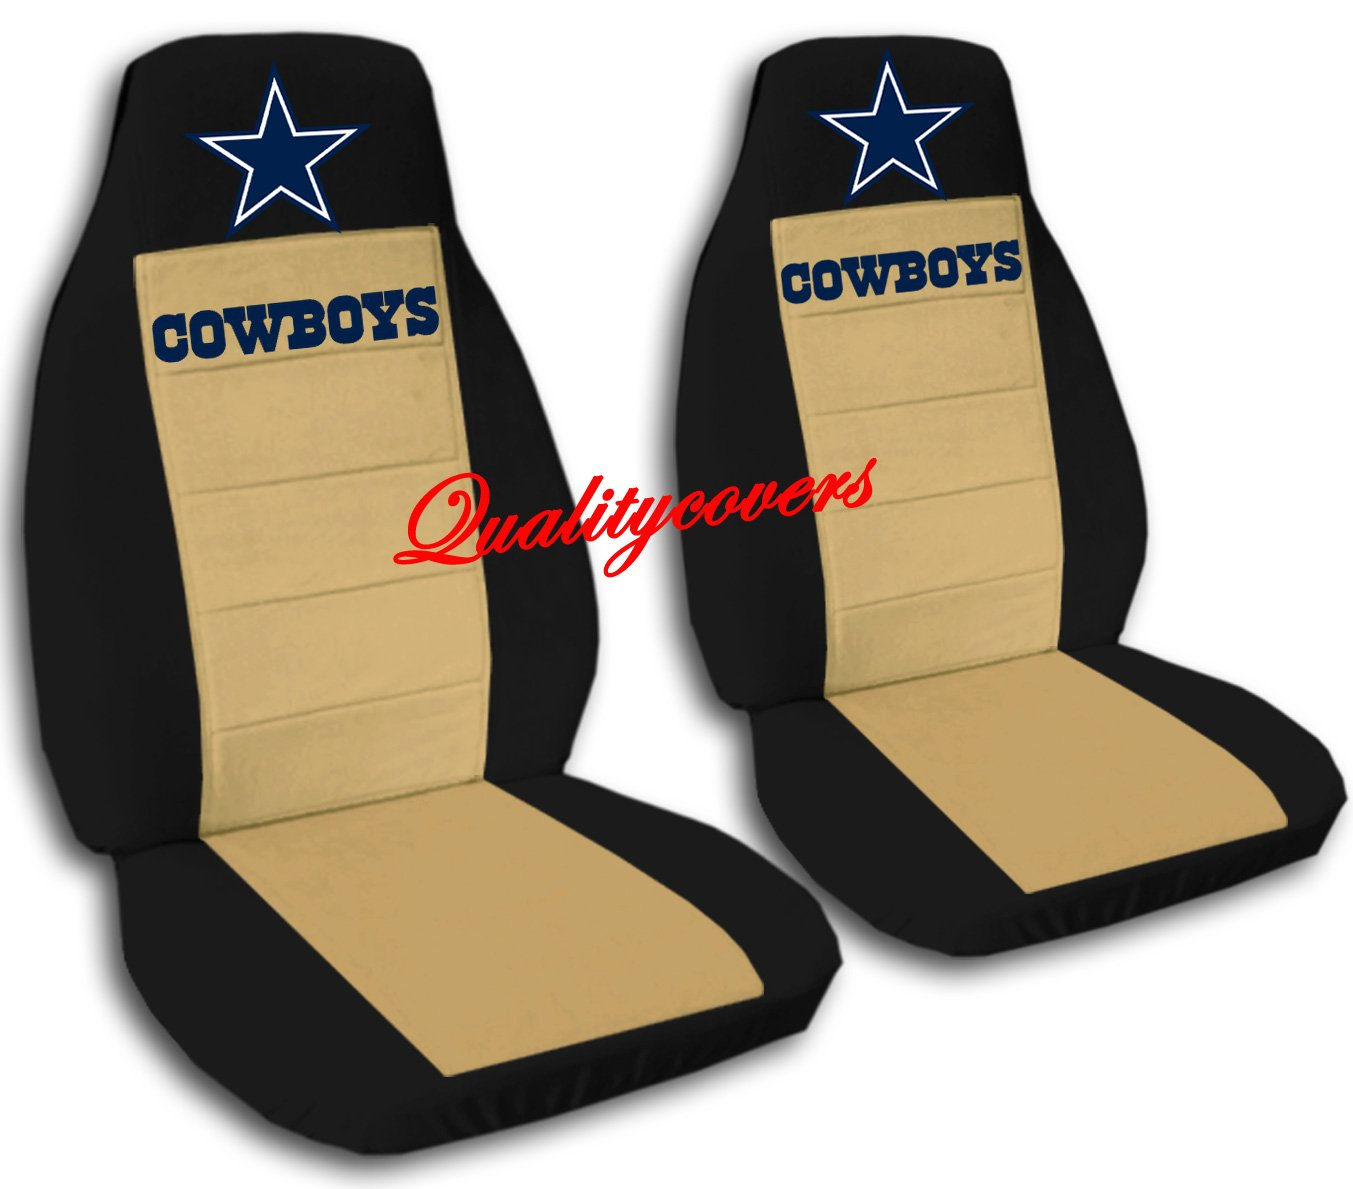 2 Black and Tan Cowboy seat covers for a 2008 Lincoln Navigator. Side Airbag friendly. by Designcovers (Image #1)